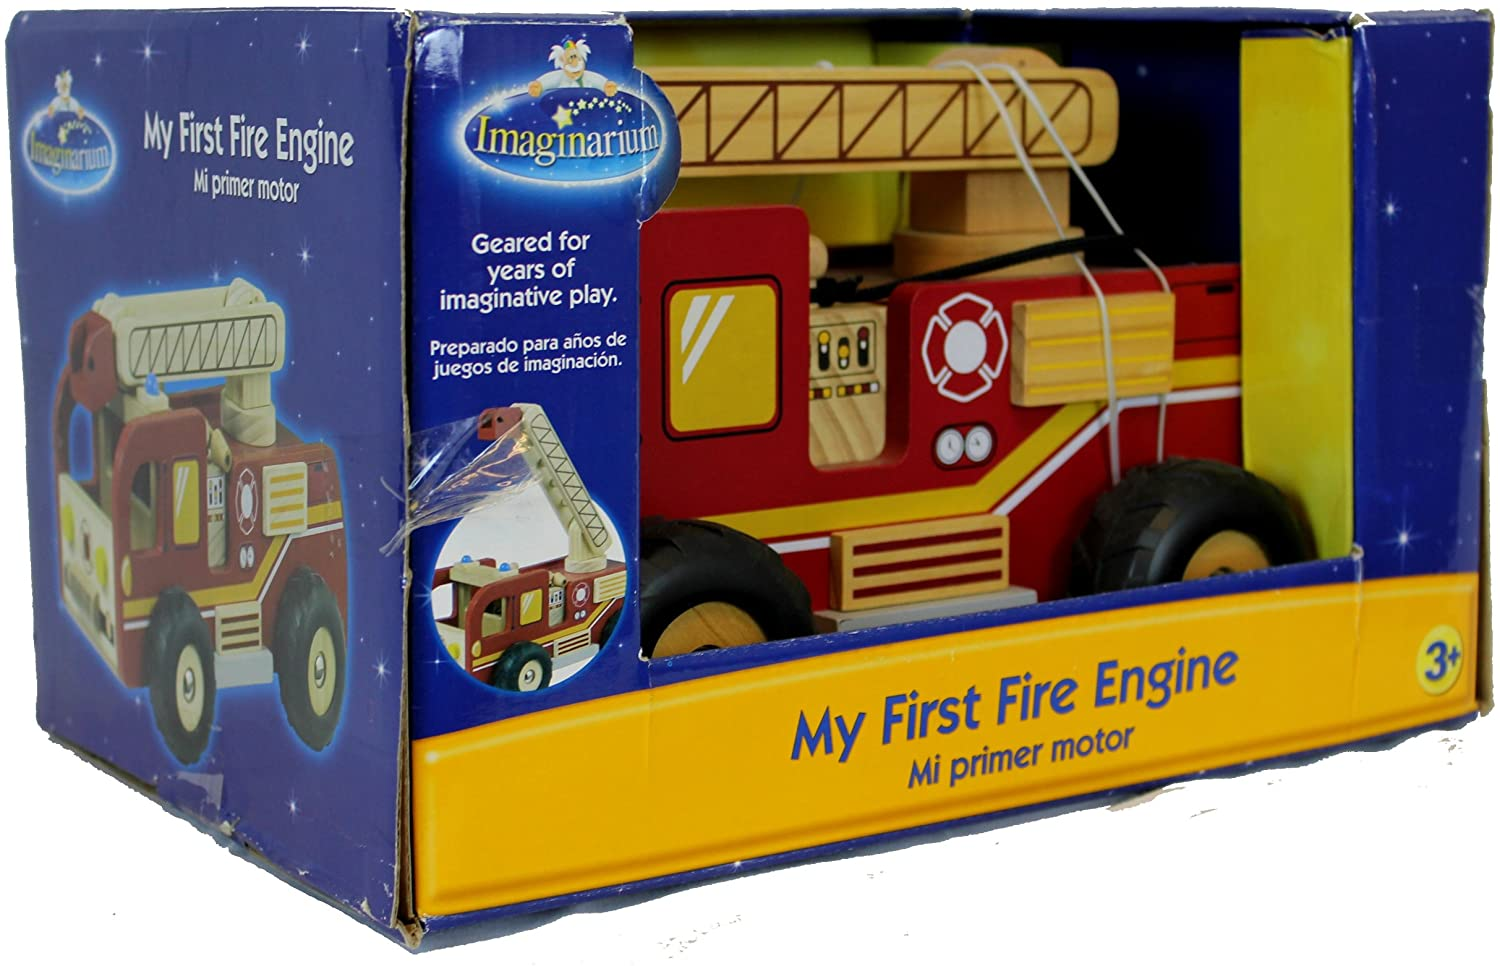 My First Fire Engine Wooden Imaginarium Firetruck